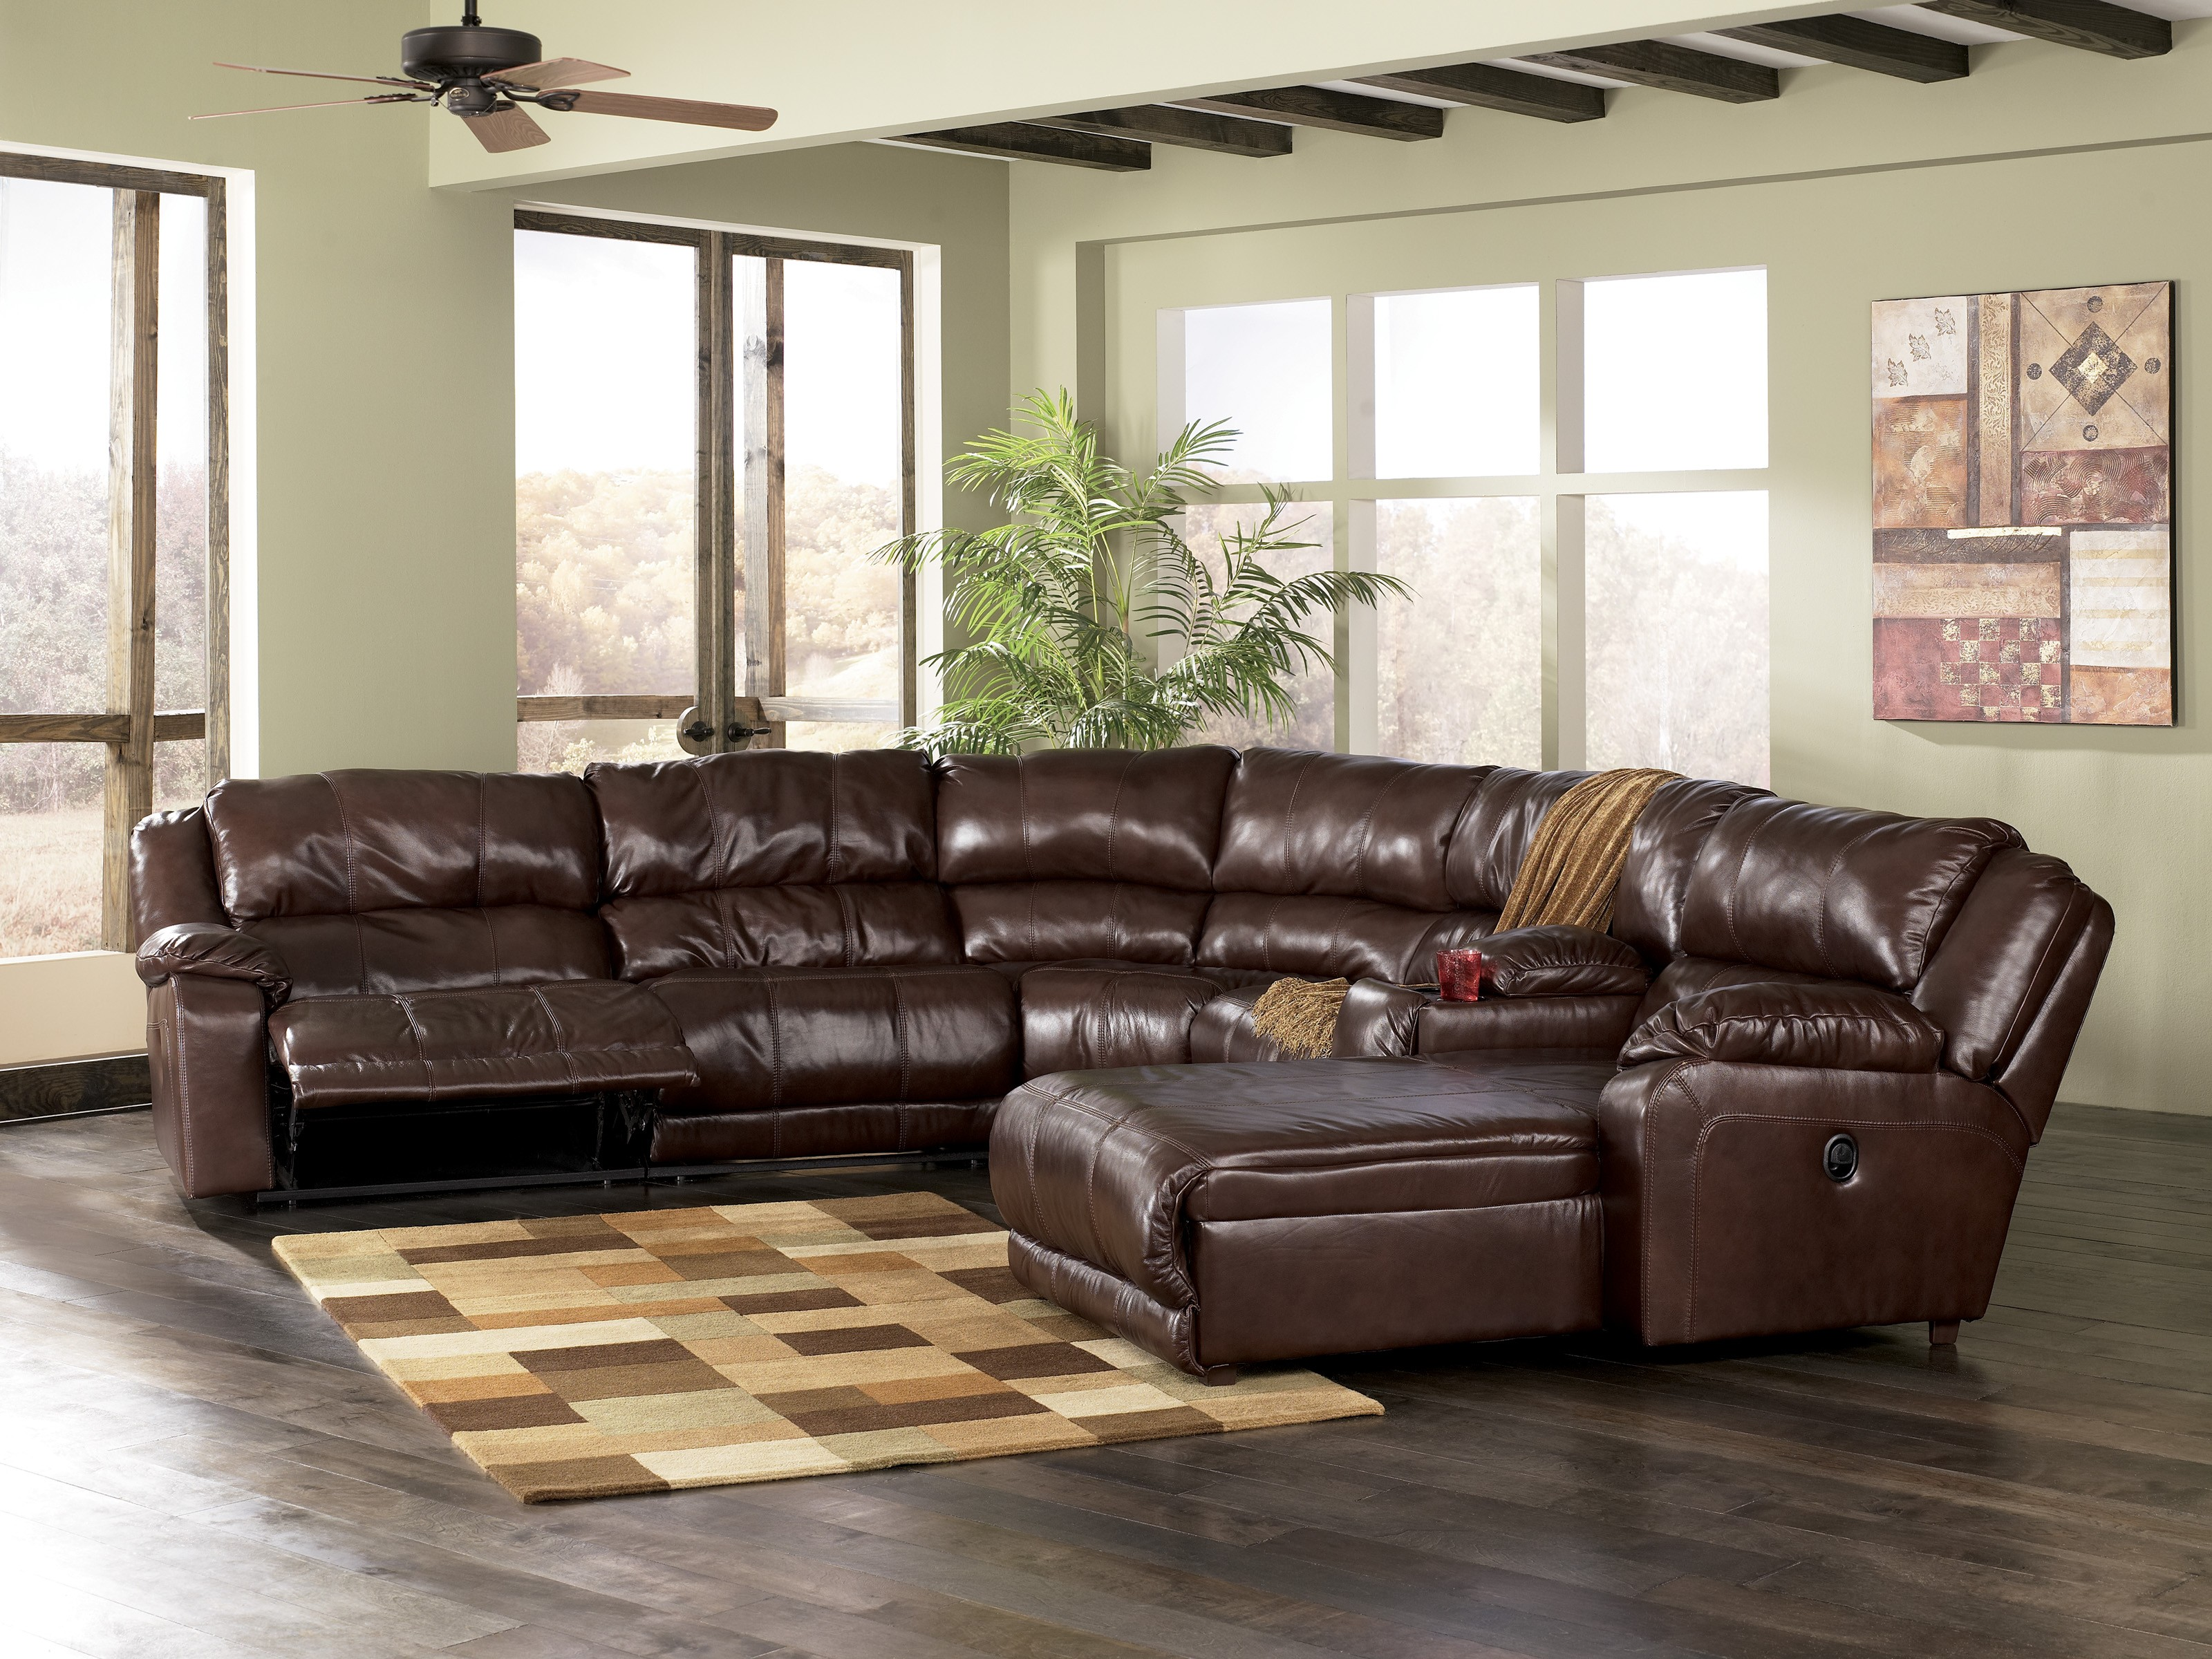 leather sectional sofa with chaise and recliner ... sleek leather sectional chaise with recliner in chocolate color LUVICFS